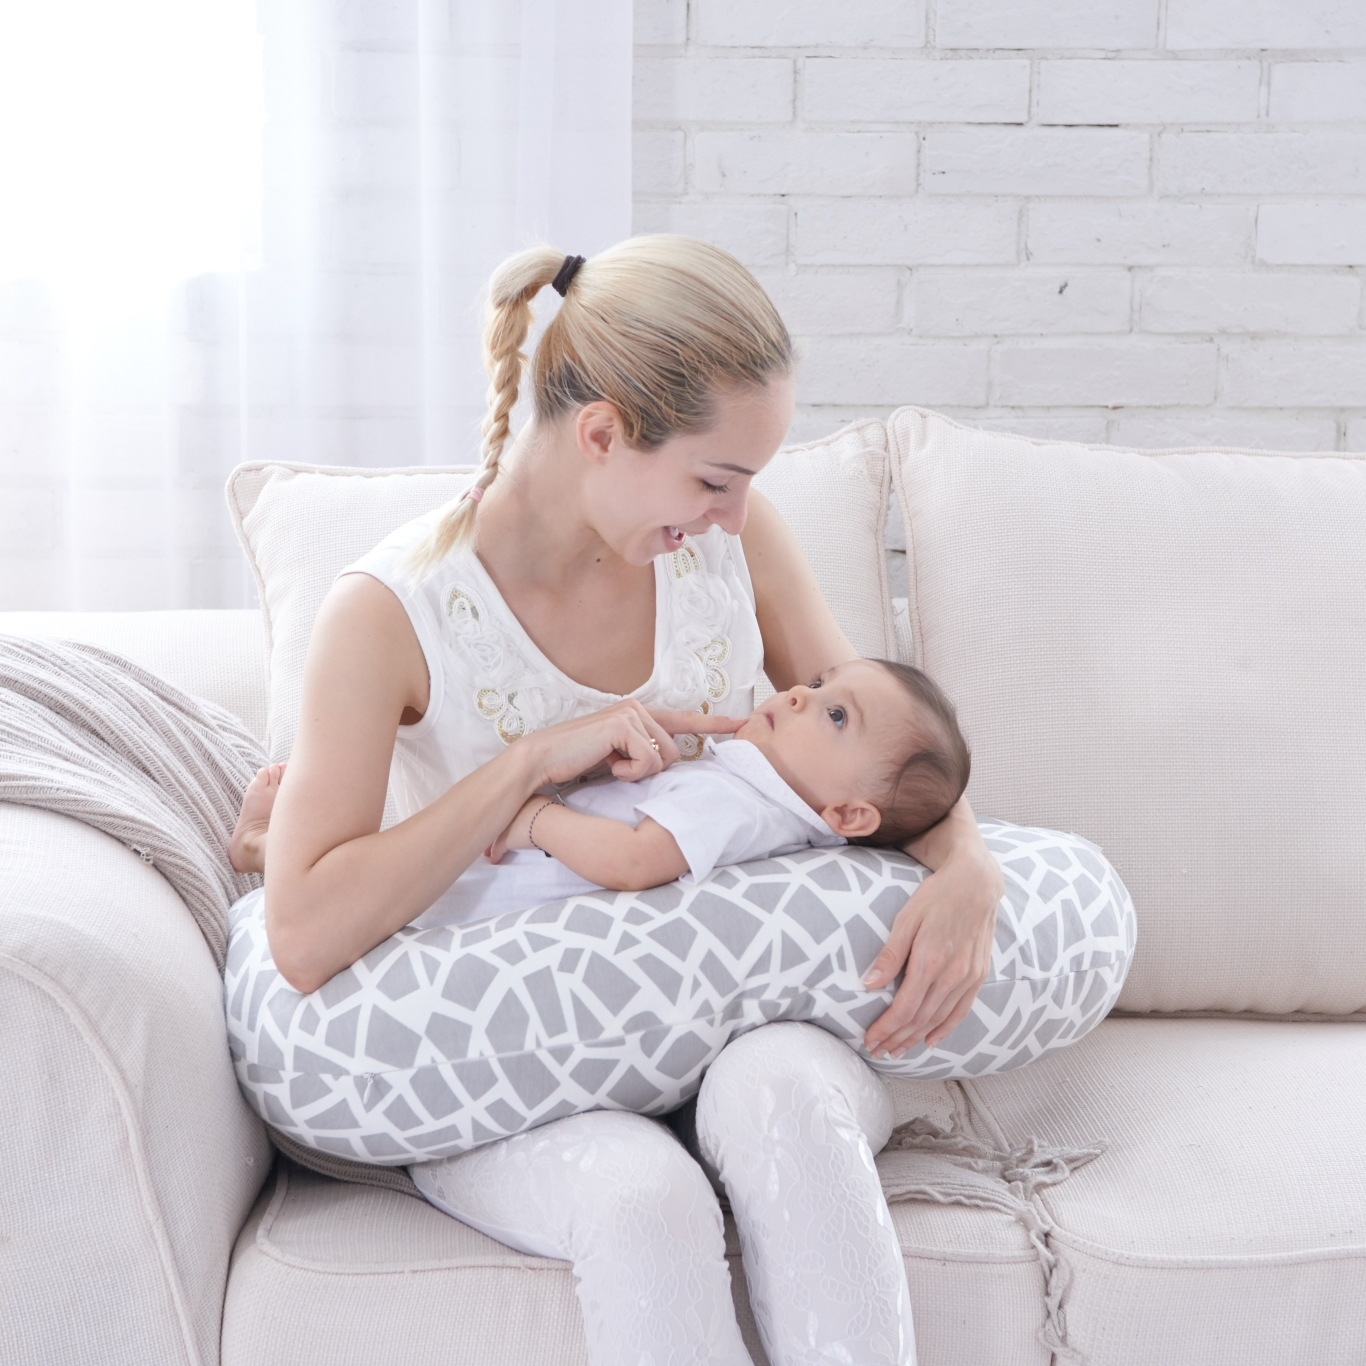 Maternity Pillows Breastfeeding Pillow Feeding Pillow U-shaped Multi-functional Baby Learn Baby Baby Pillow waist support baby nursing breastfeeding pillow soft baby learning sit pillow multi function baby pillows almofada infantil